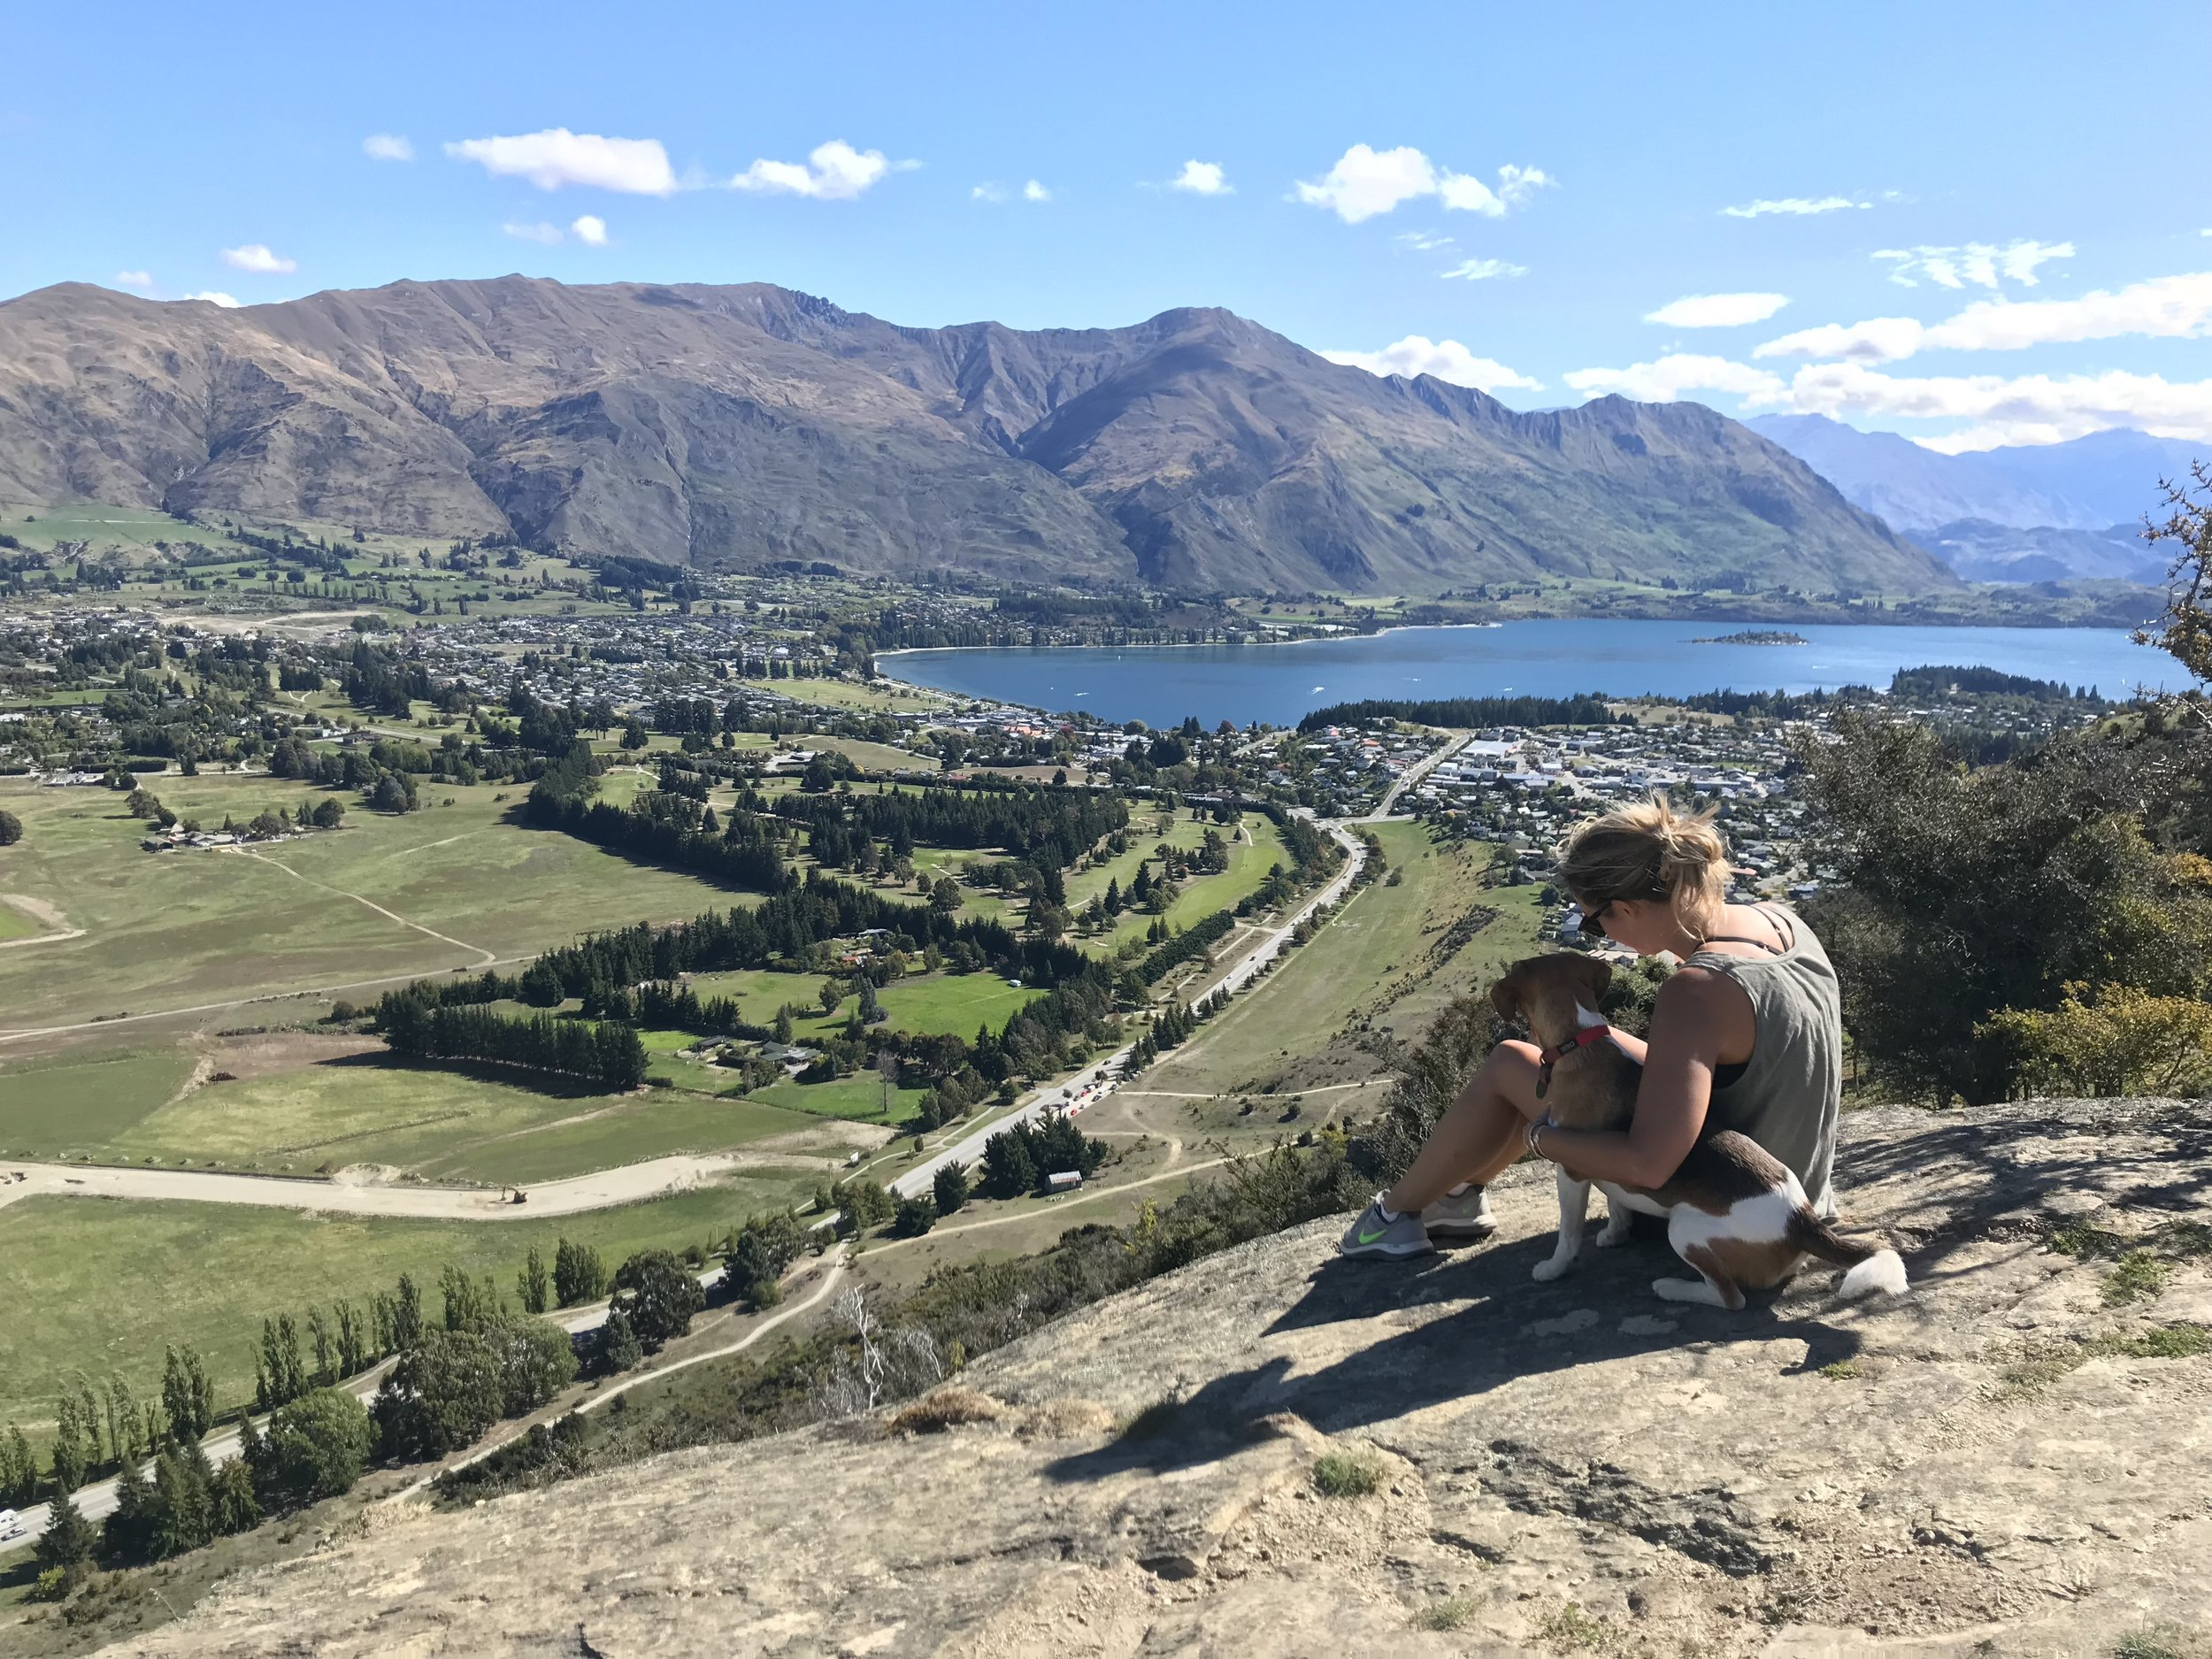 Wanaka is the place I feel most at home. It is a small, but increasingly popular, town in the South Island of New Zealand. My family has lived there for four generations. This photo was taken from the top of the Mount Iron track, and is of my cousin and her dog. I love doing this walk when I first arrive back because I'm reminded of old memories on Lake Wanaka and can also see new developments in the town.  Isabel Donaldson